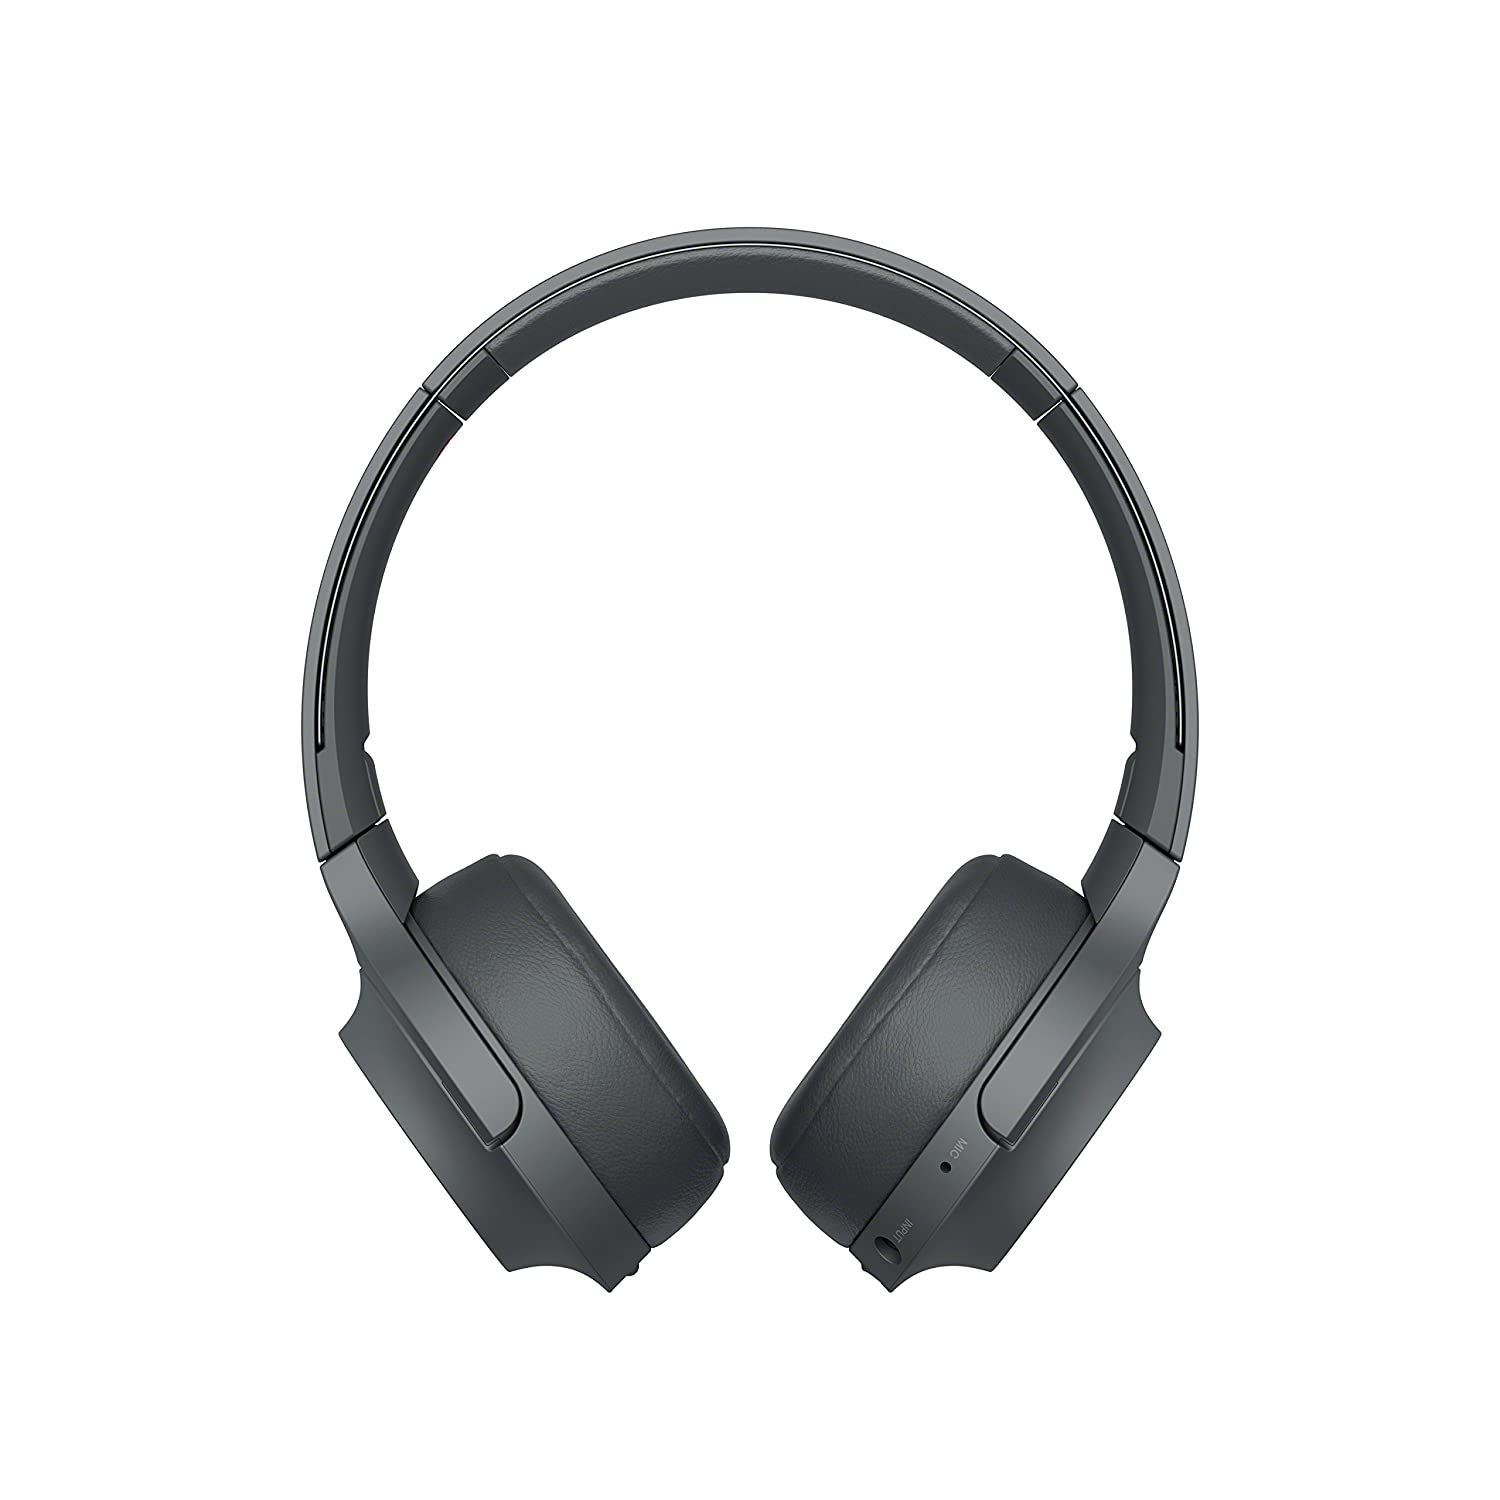 Sony WHH800 Cuffie Over-Hear Stereo, Bluetooth, Hi-Res Audio, con Microfono Integrato, Quick Charge, Colore Nero